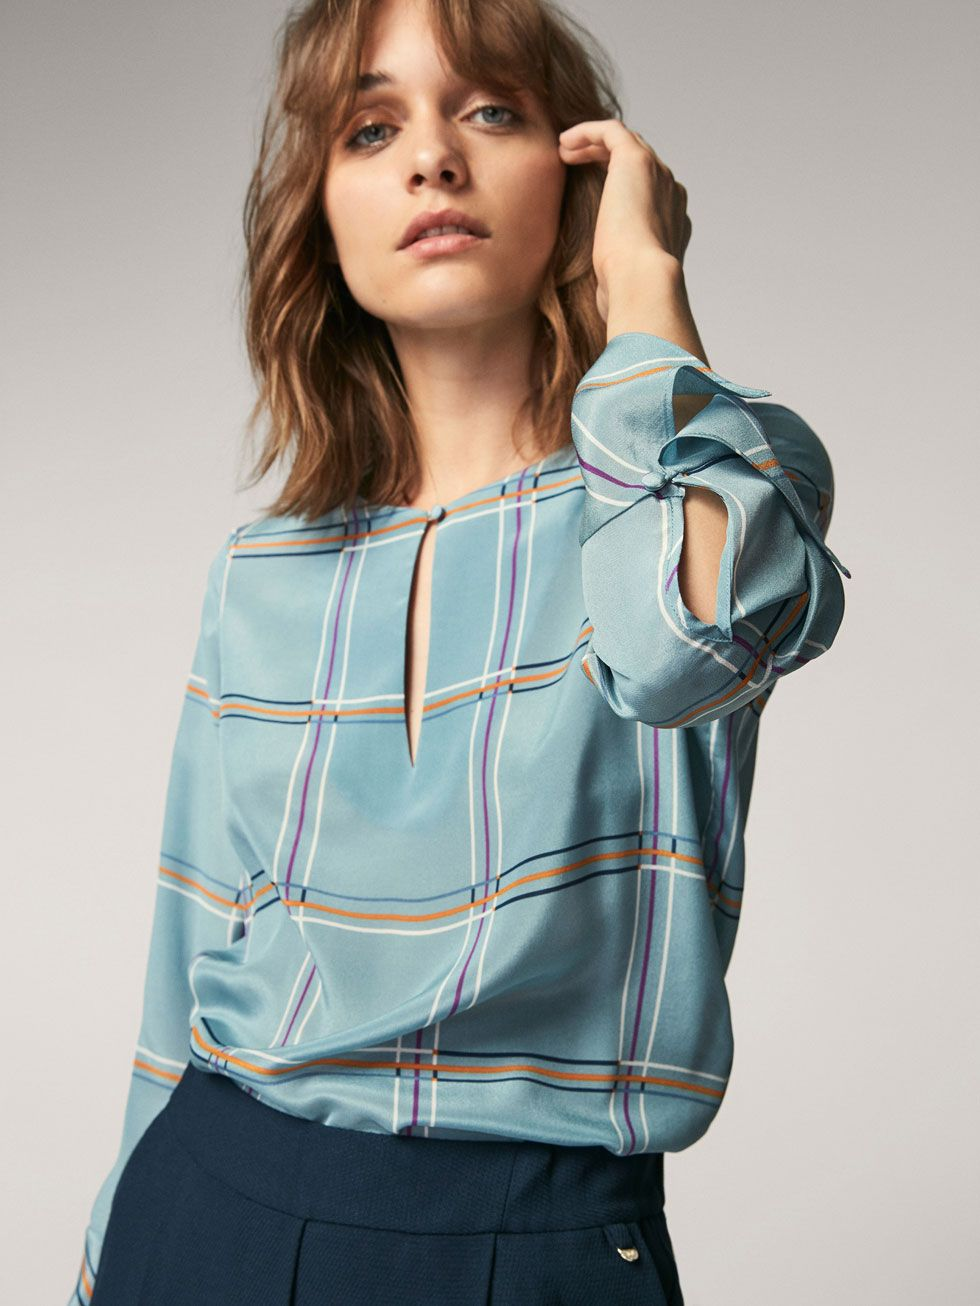 384d148377f Spring summer 2017 Women´s CHECKED SILK SHIRT WITH FLARED DETAIL at Massimo  Dutti for 89.5. Effortless elegance!